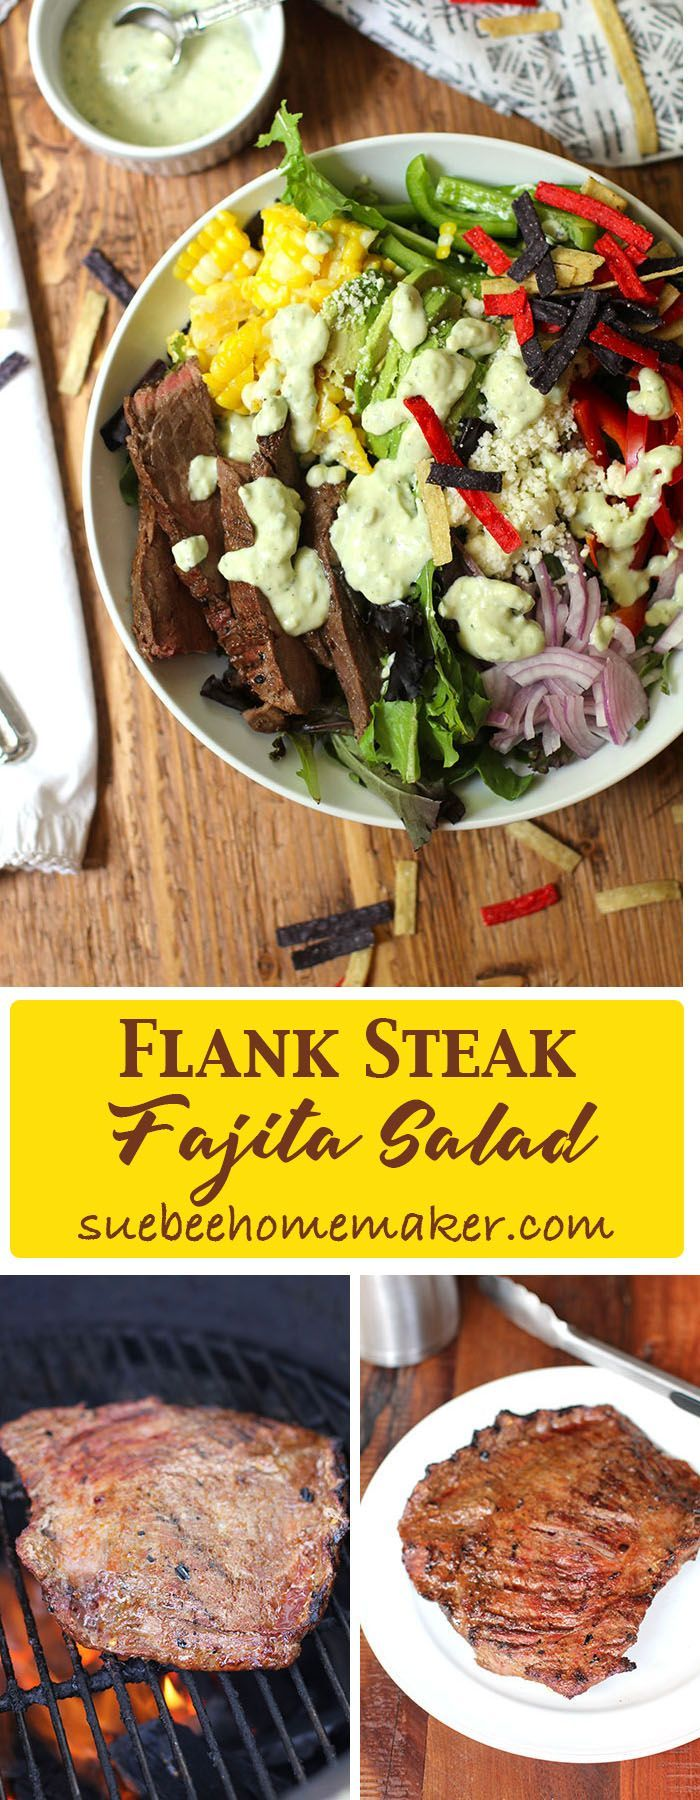 Flank Steak Fajita Salad is another Tex-Mex creation, combining a perfectly cooked flank steak, veggies, fresh corn - topped with Creamy Avocado Dressing!